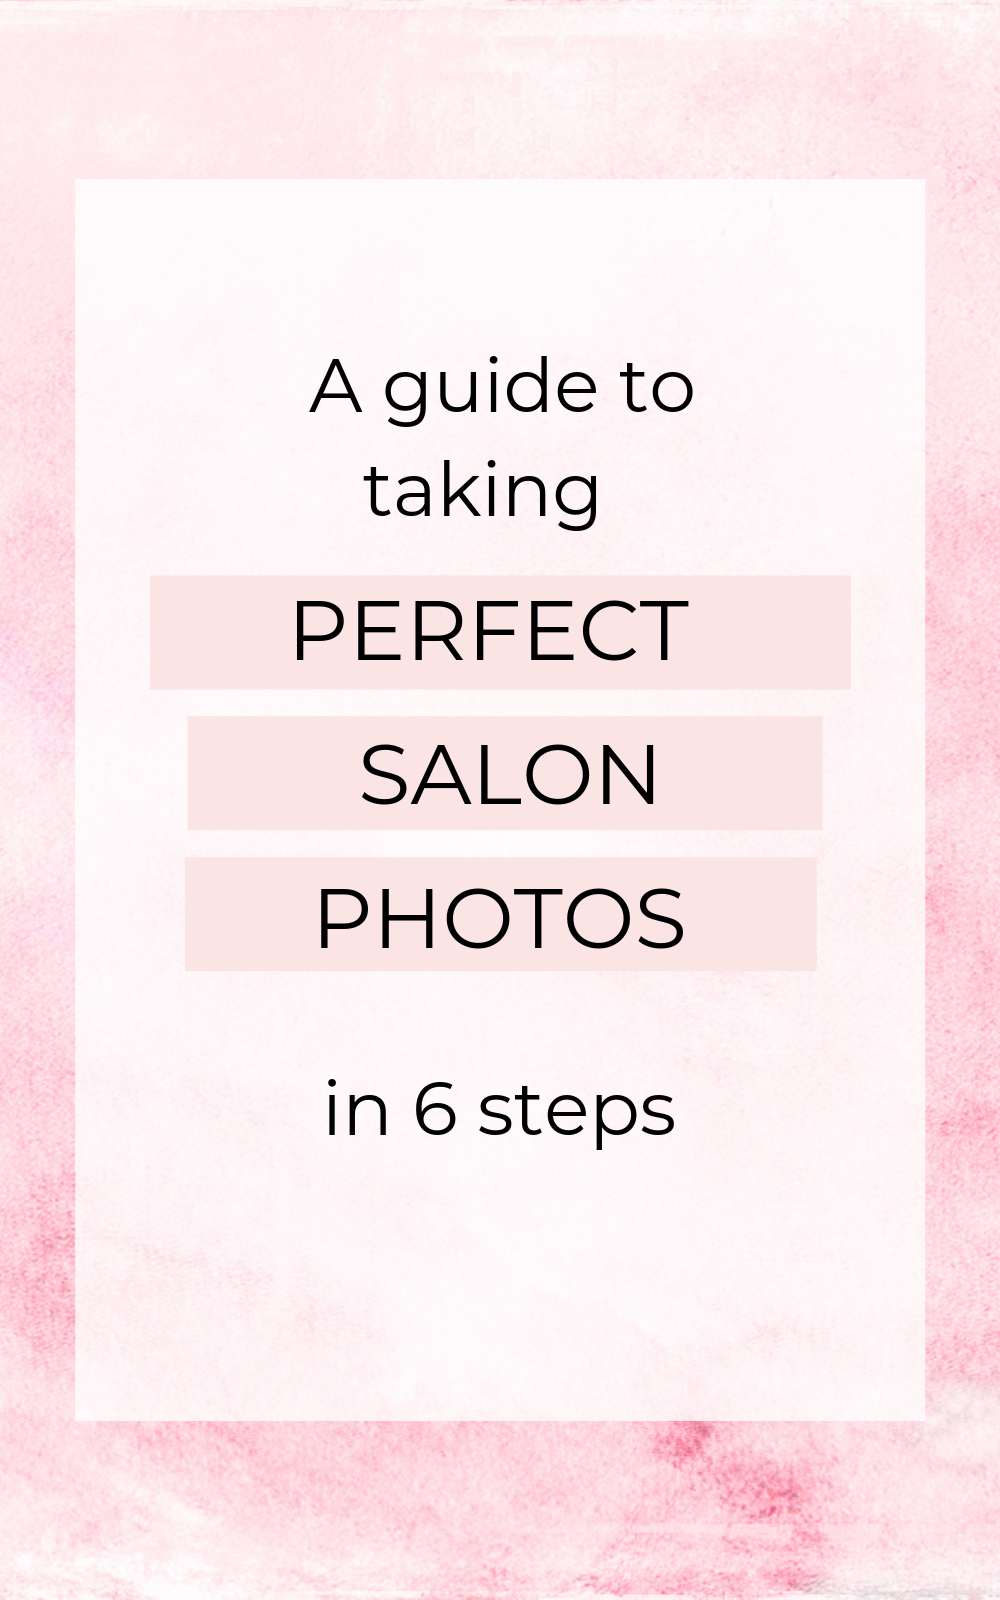 How to take gorgeous photos for your salon (a DIY guide) images